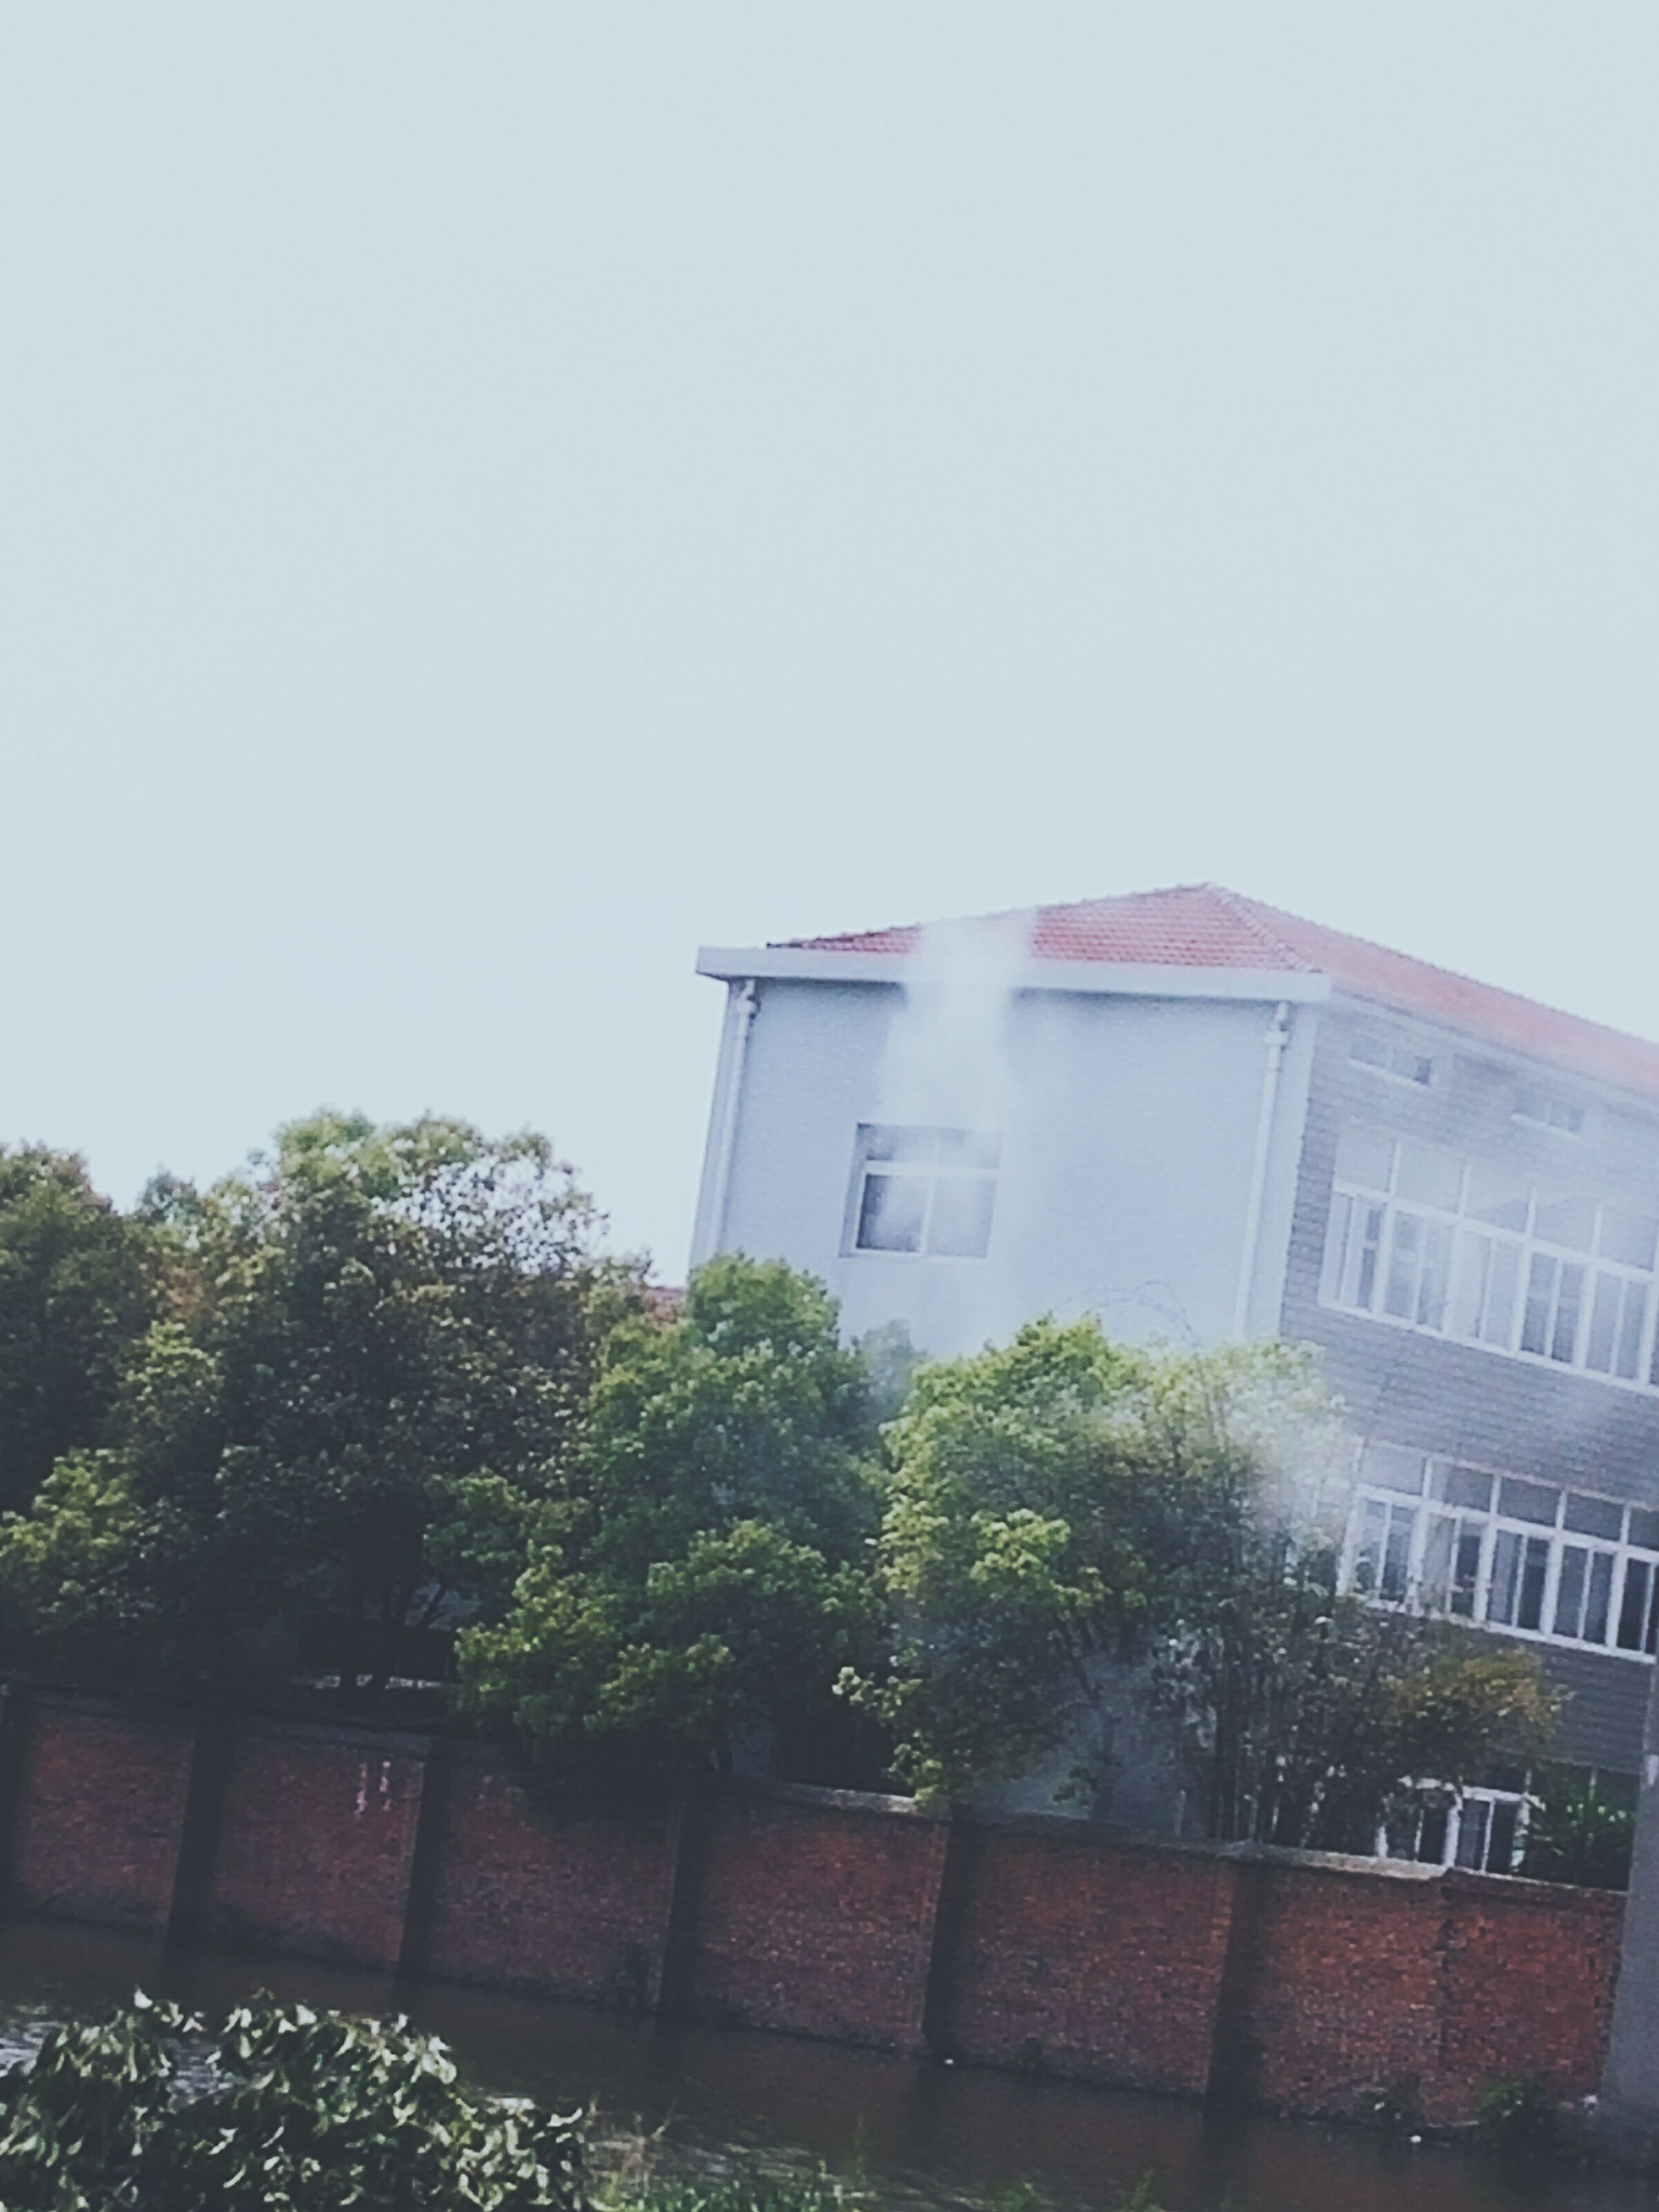 building exterior, architecture, built structure, window, tree, low angle view, clear sky, house, residential structure, building, residential building, growth, copy space, day, glass - material, outdoors, sky, no people, plant, green color